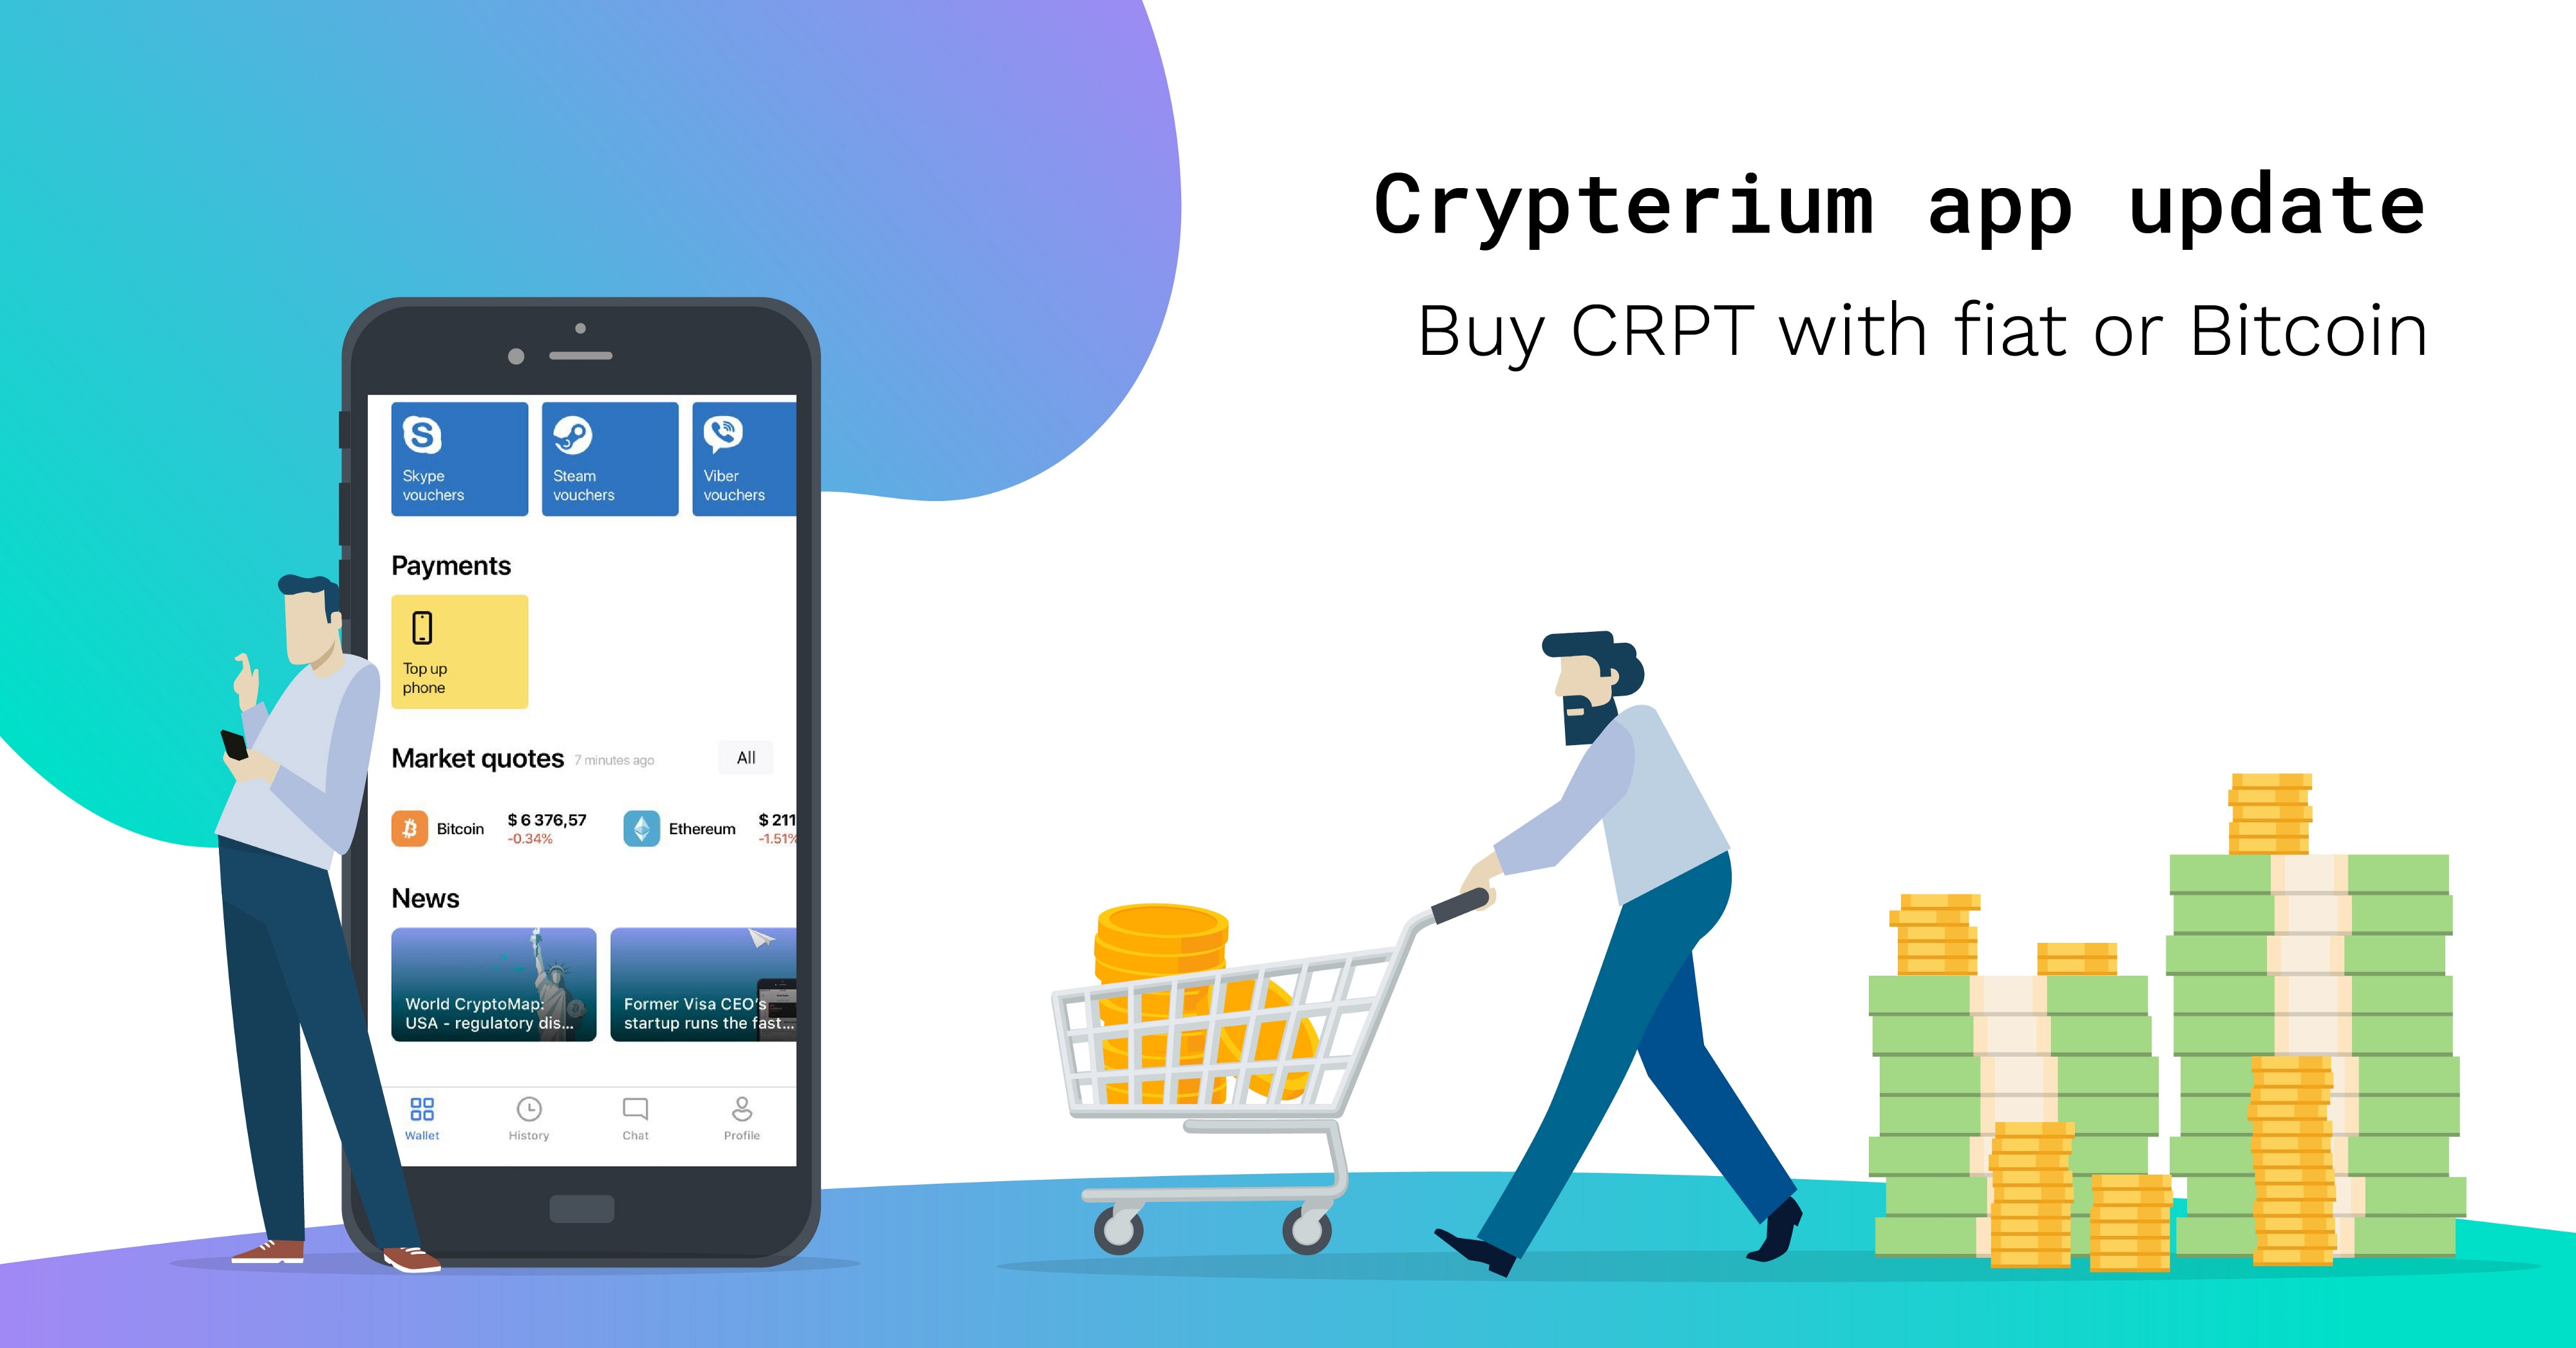 Crypterium app update! Buy CRPT with fiat or Bitcoin in the